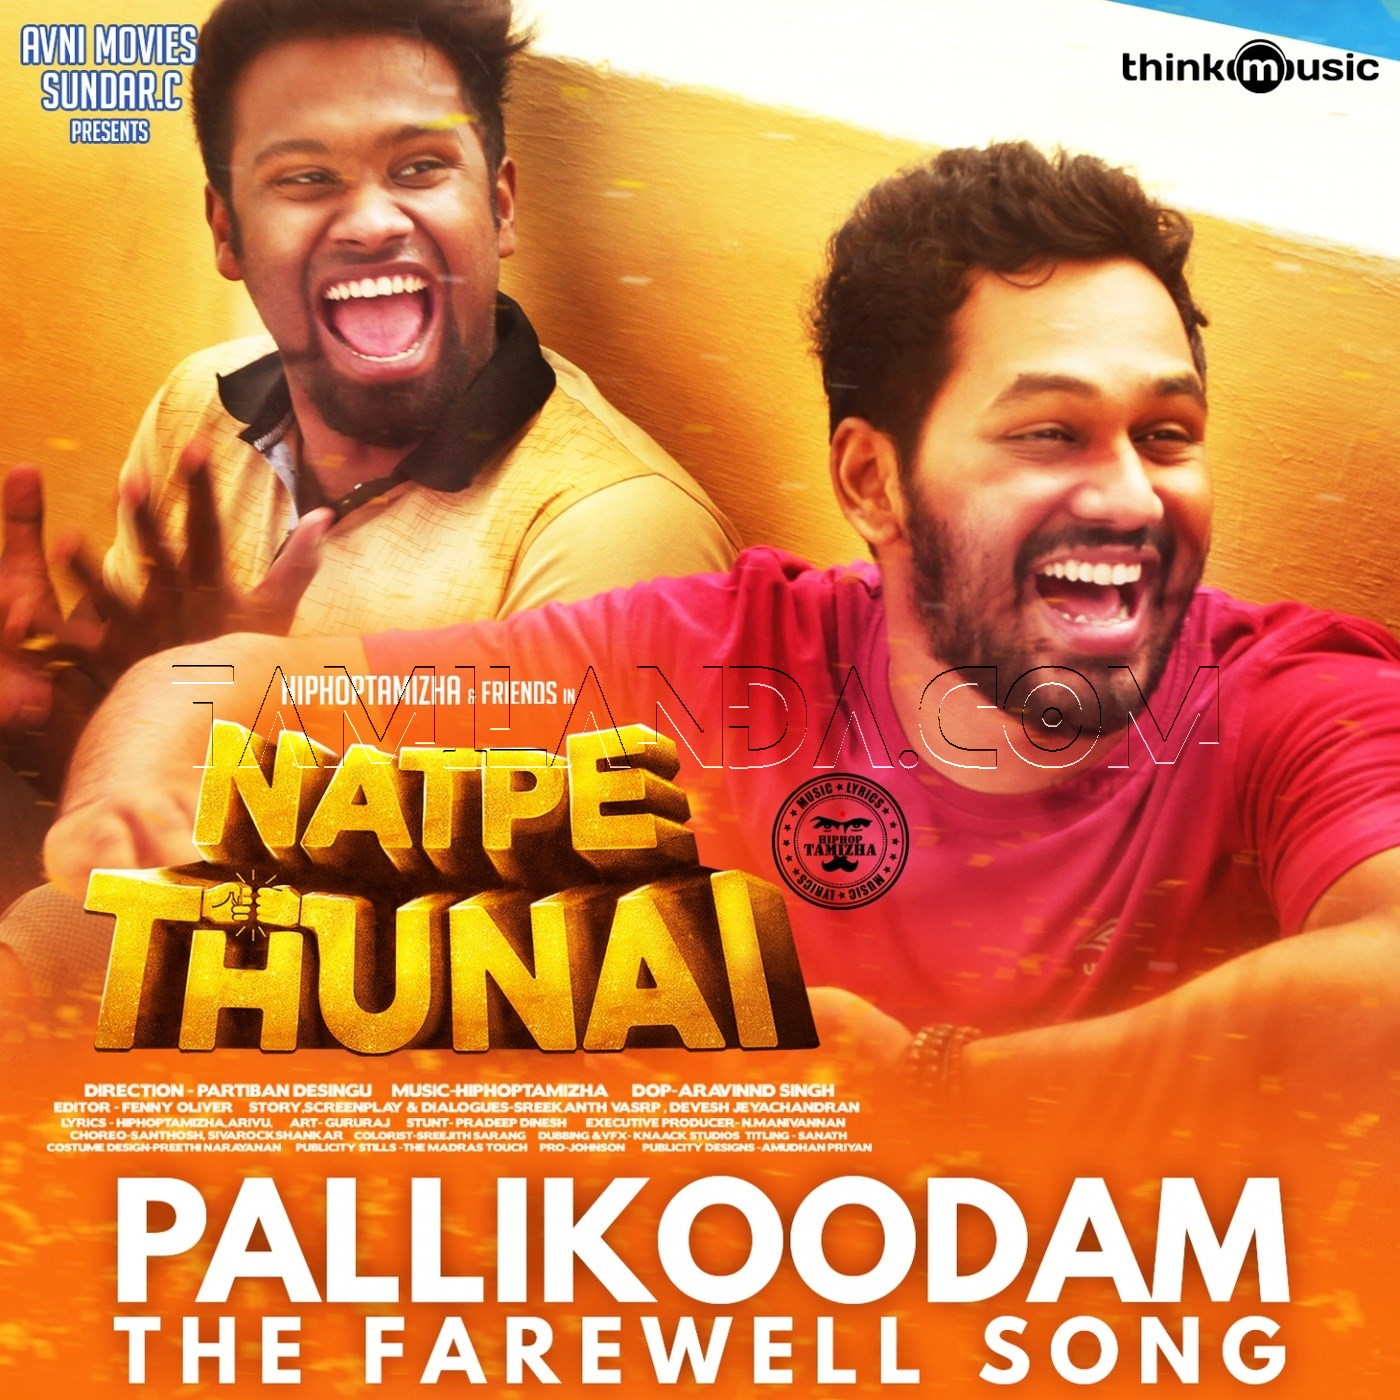 Pallikoodam – The Farewell Song (From Natpe Thunai) (2019)